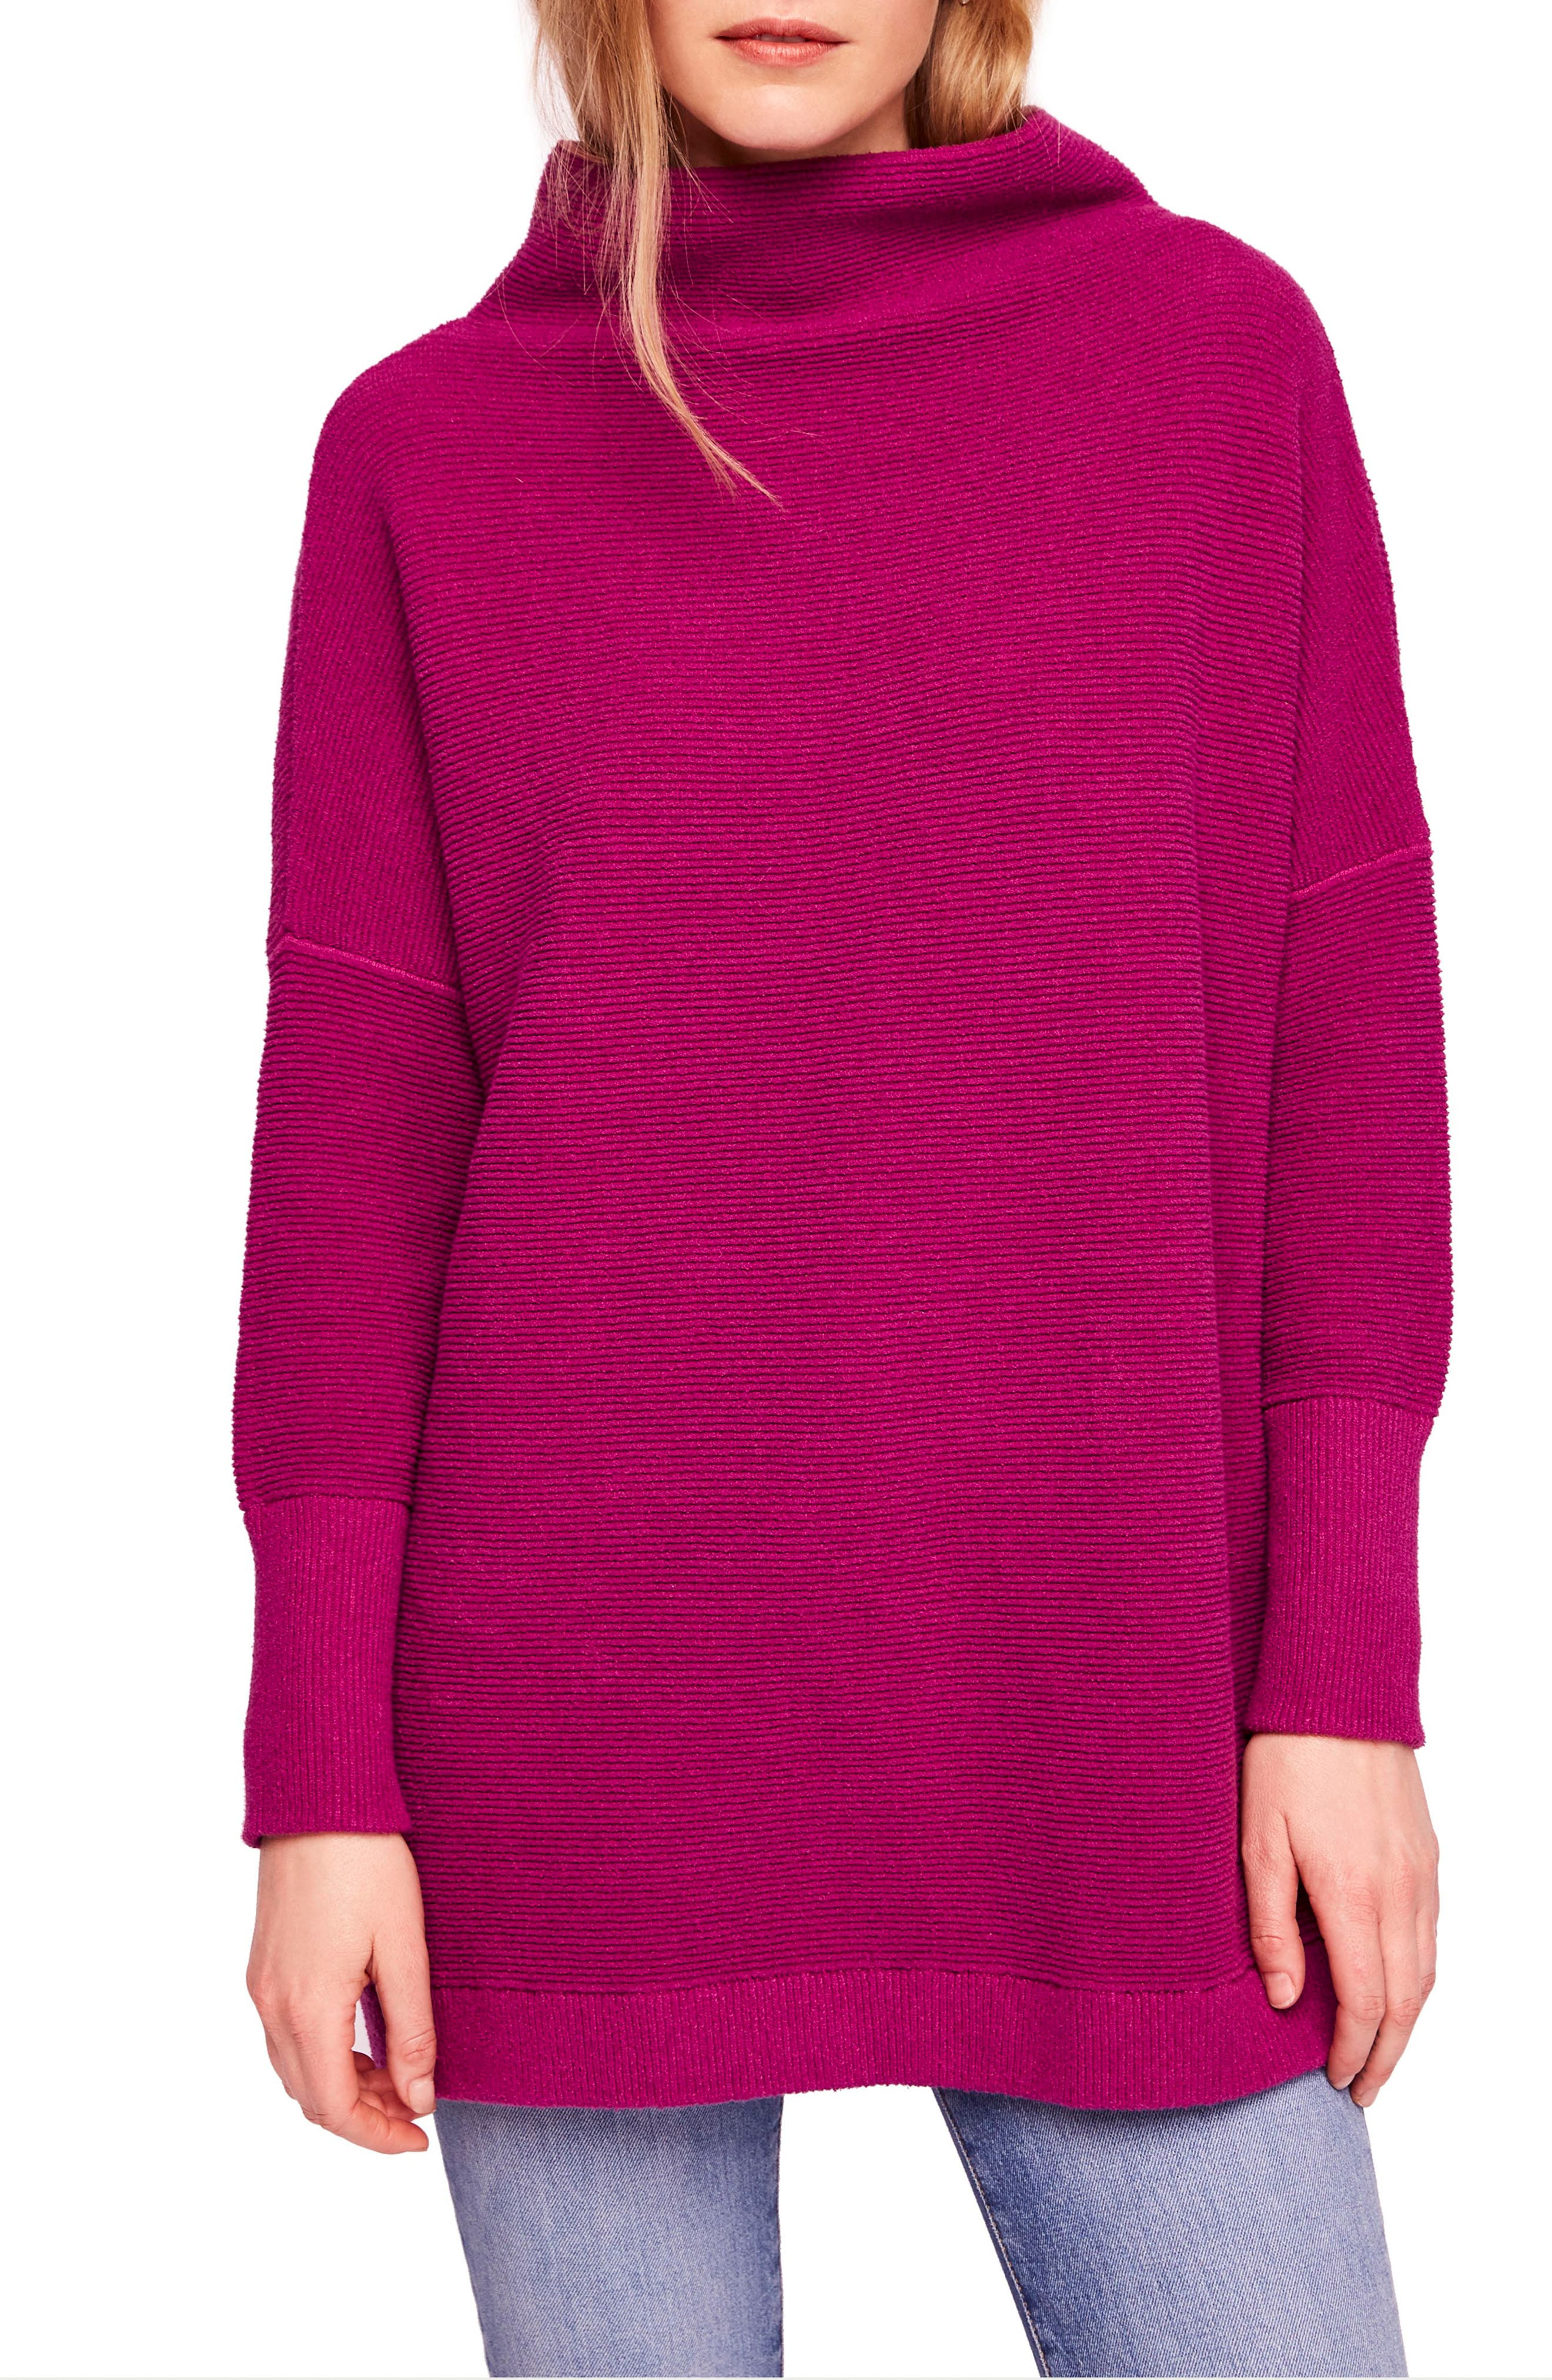 FREE PEOPLE Ottoman Slouchy Tunic, Main, color, MULBERRY